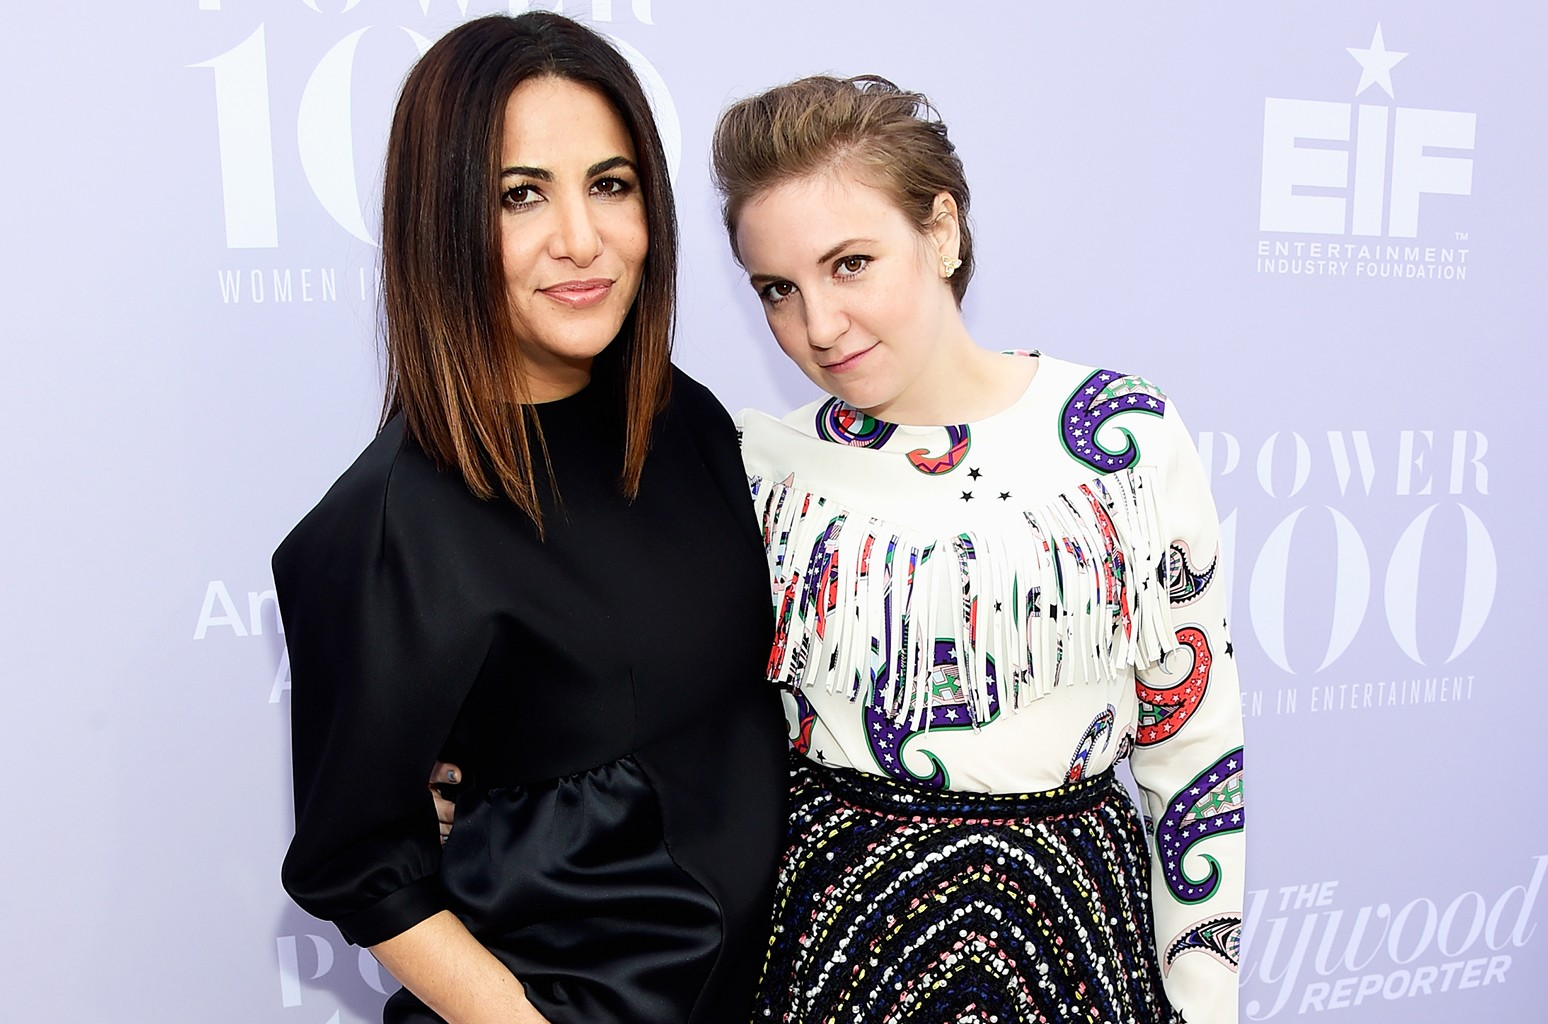 Jennifer Konner and Lena Dunham attend the 24th annual Women in Entertainment Breakfast hosted by The Hollywood Reporter at Milk Studios on Dec. 9, 2015 in Los Angeles.